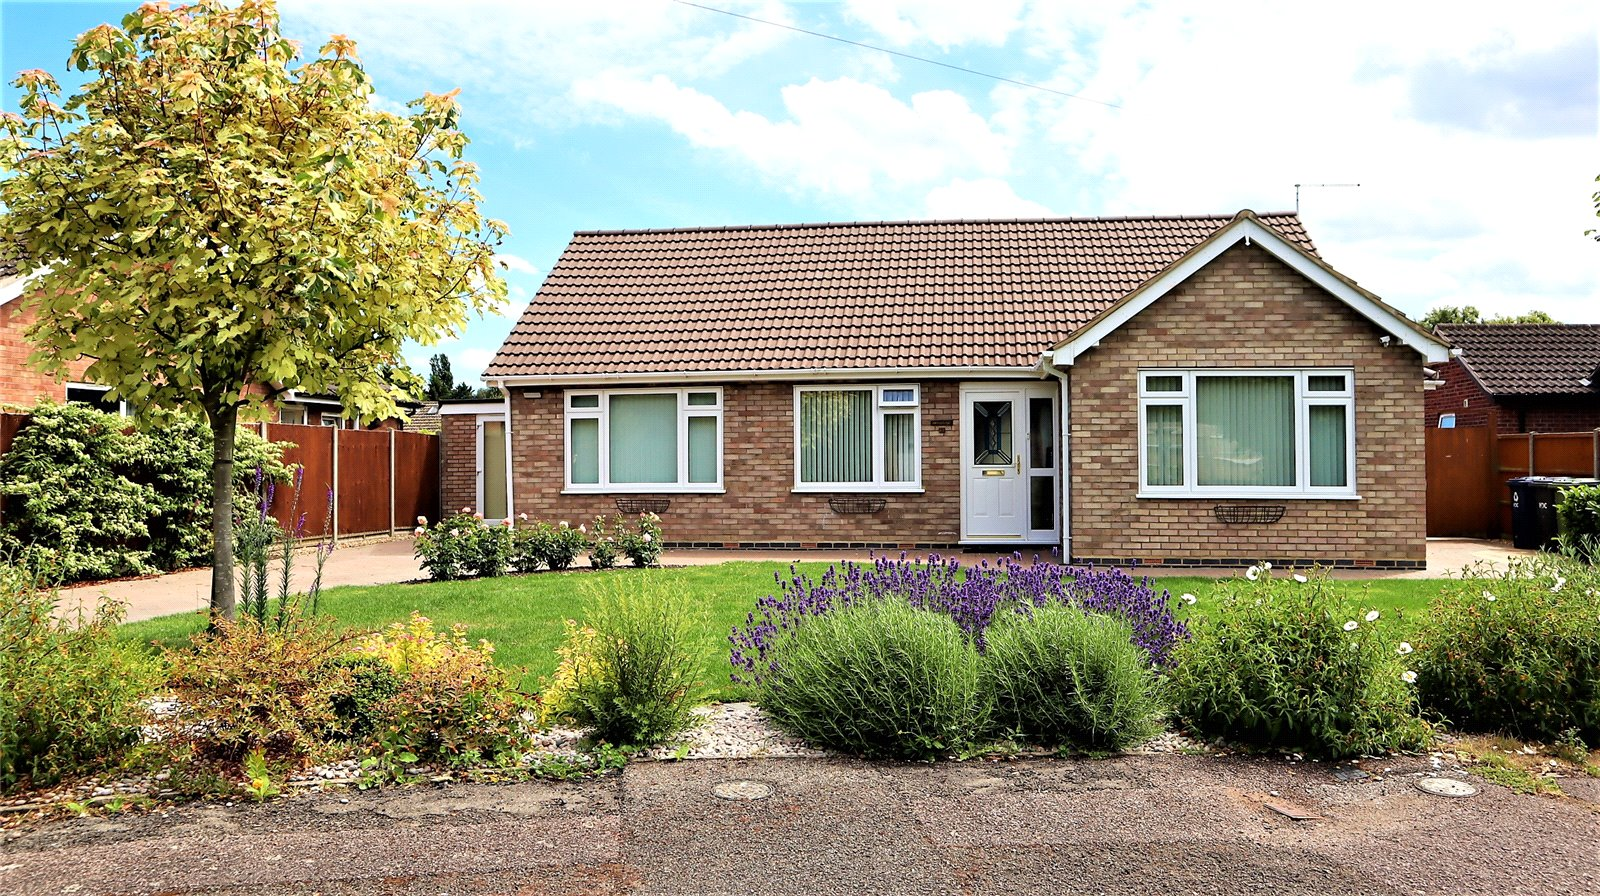 3 bed bungalow for sale in Peppercorn Lane, Eaton Socon, PE19